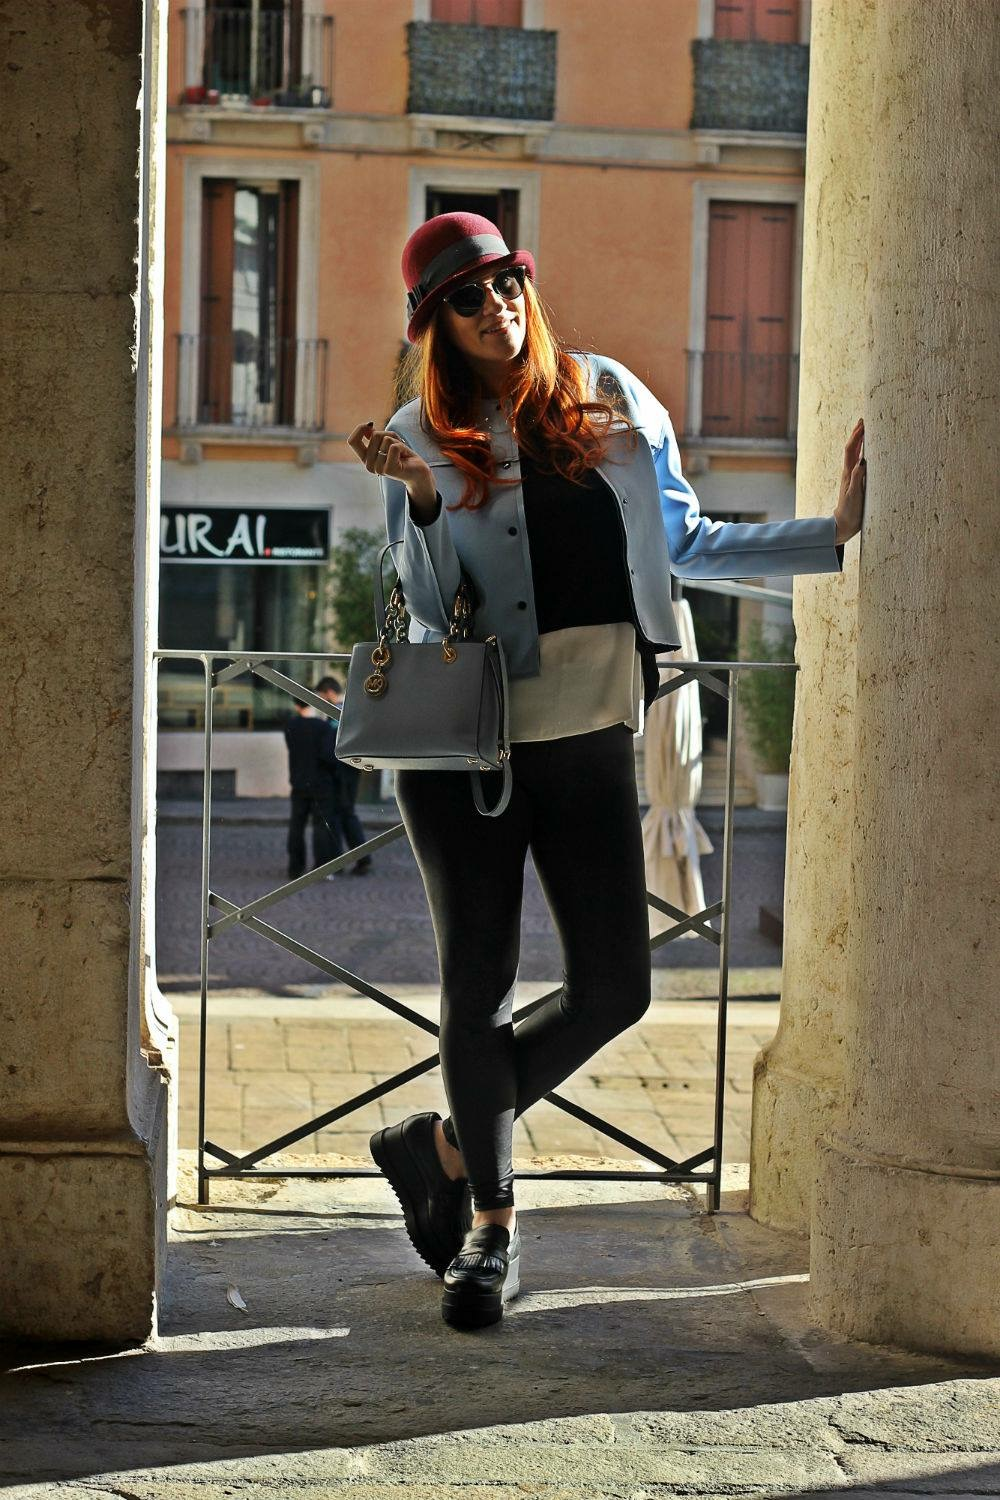 elisabetta bertolini travel fashion blogger moda donna outfit autunno 2015